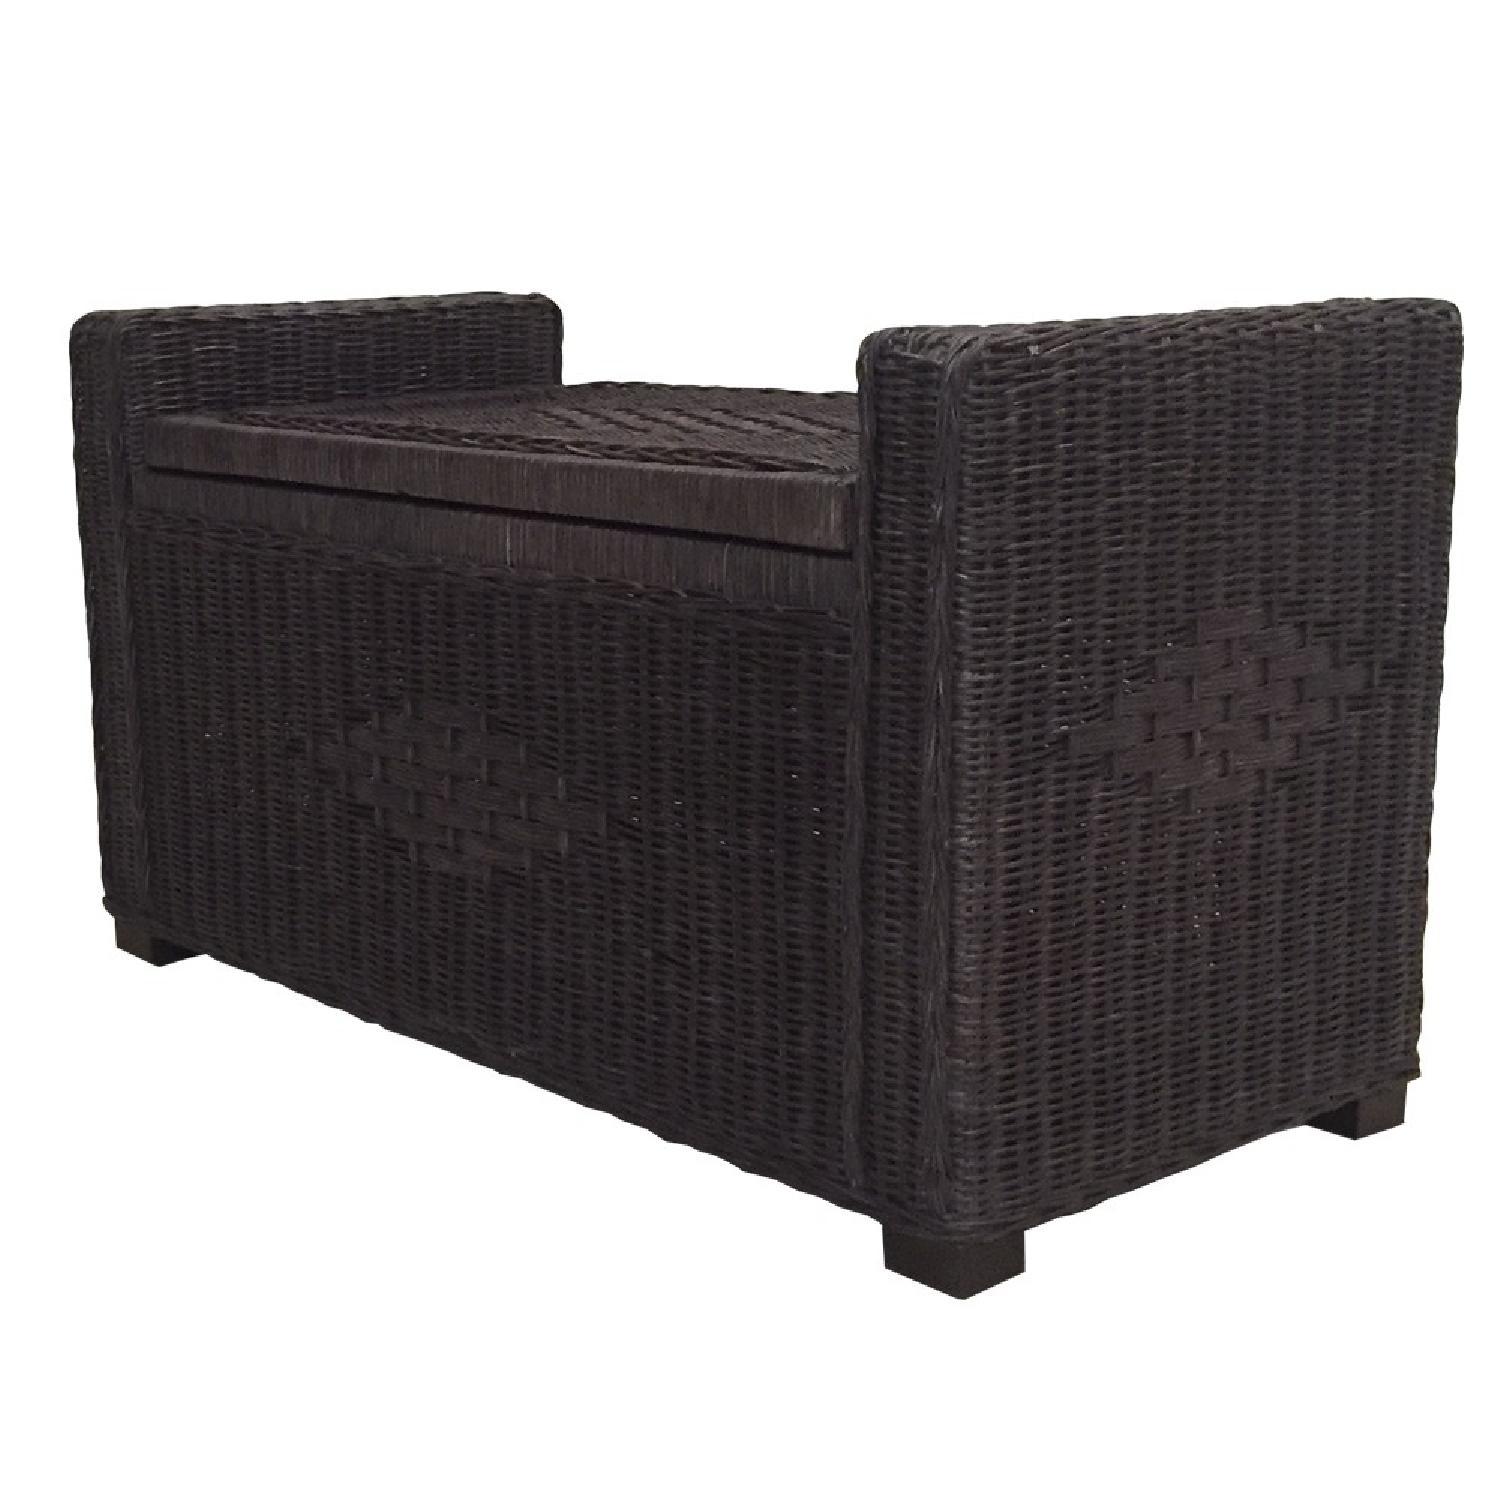 Adam Dark Brown Rattan Chest Storage Ottoman